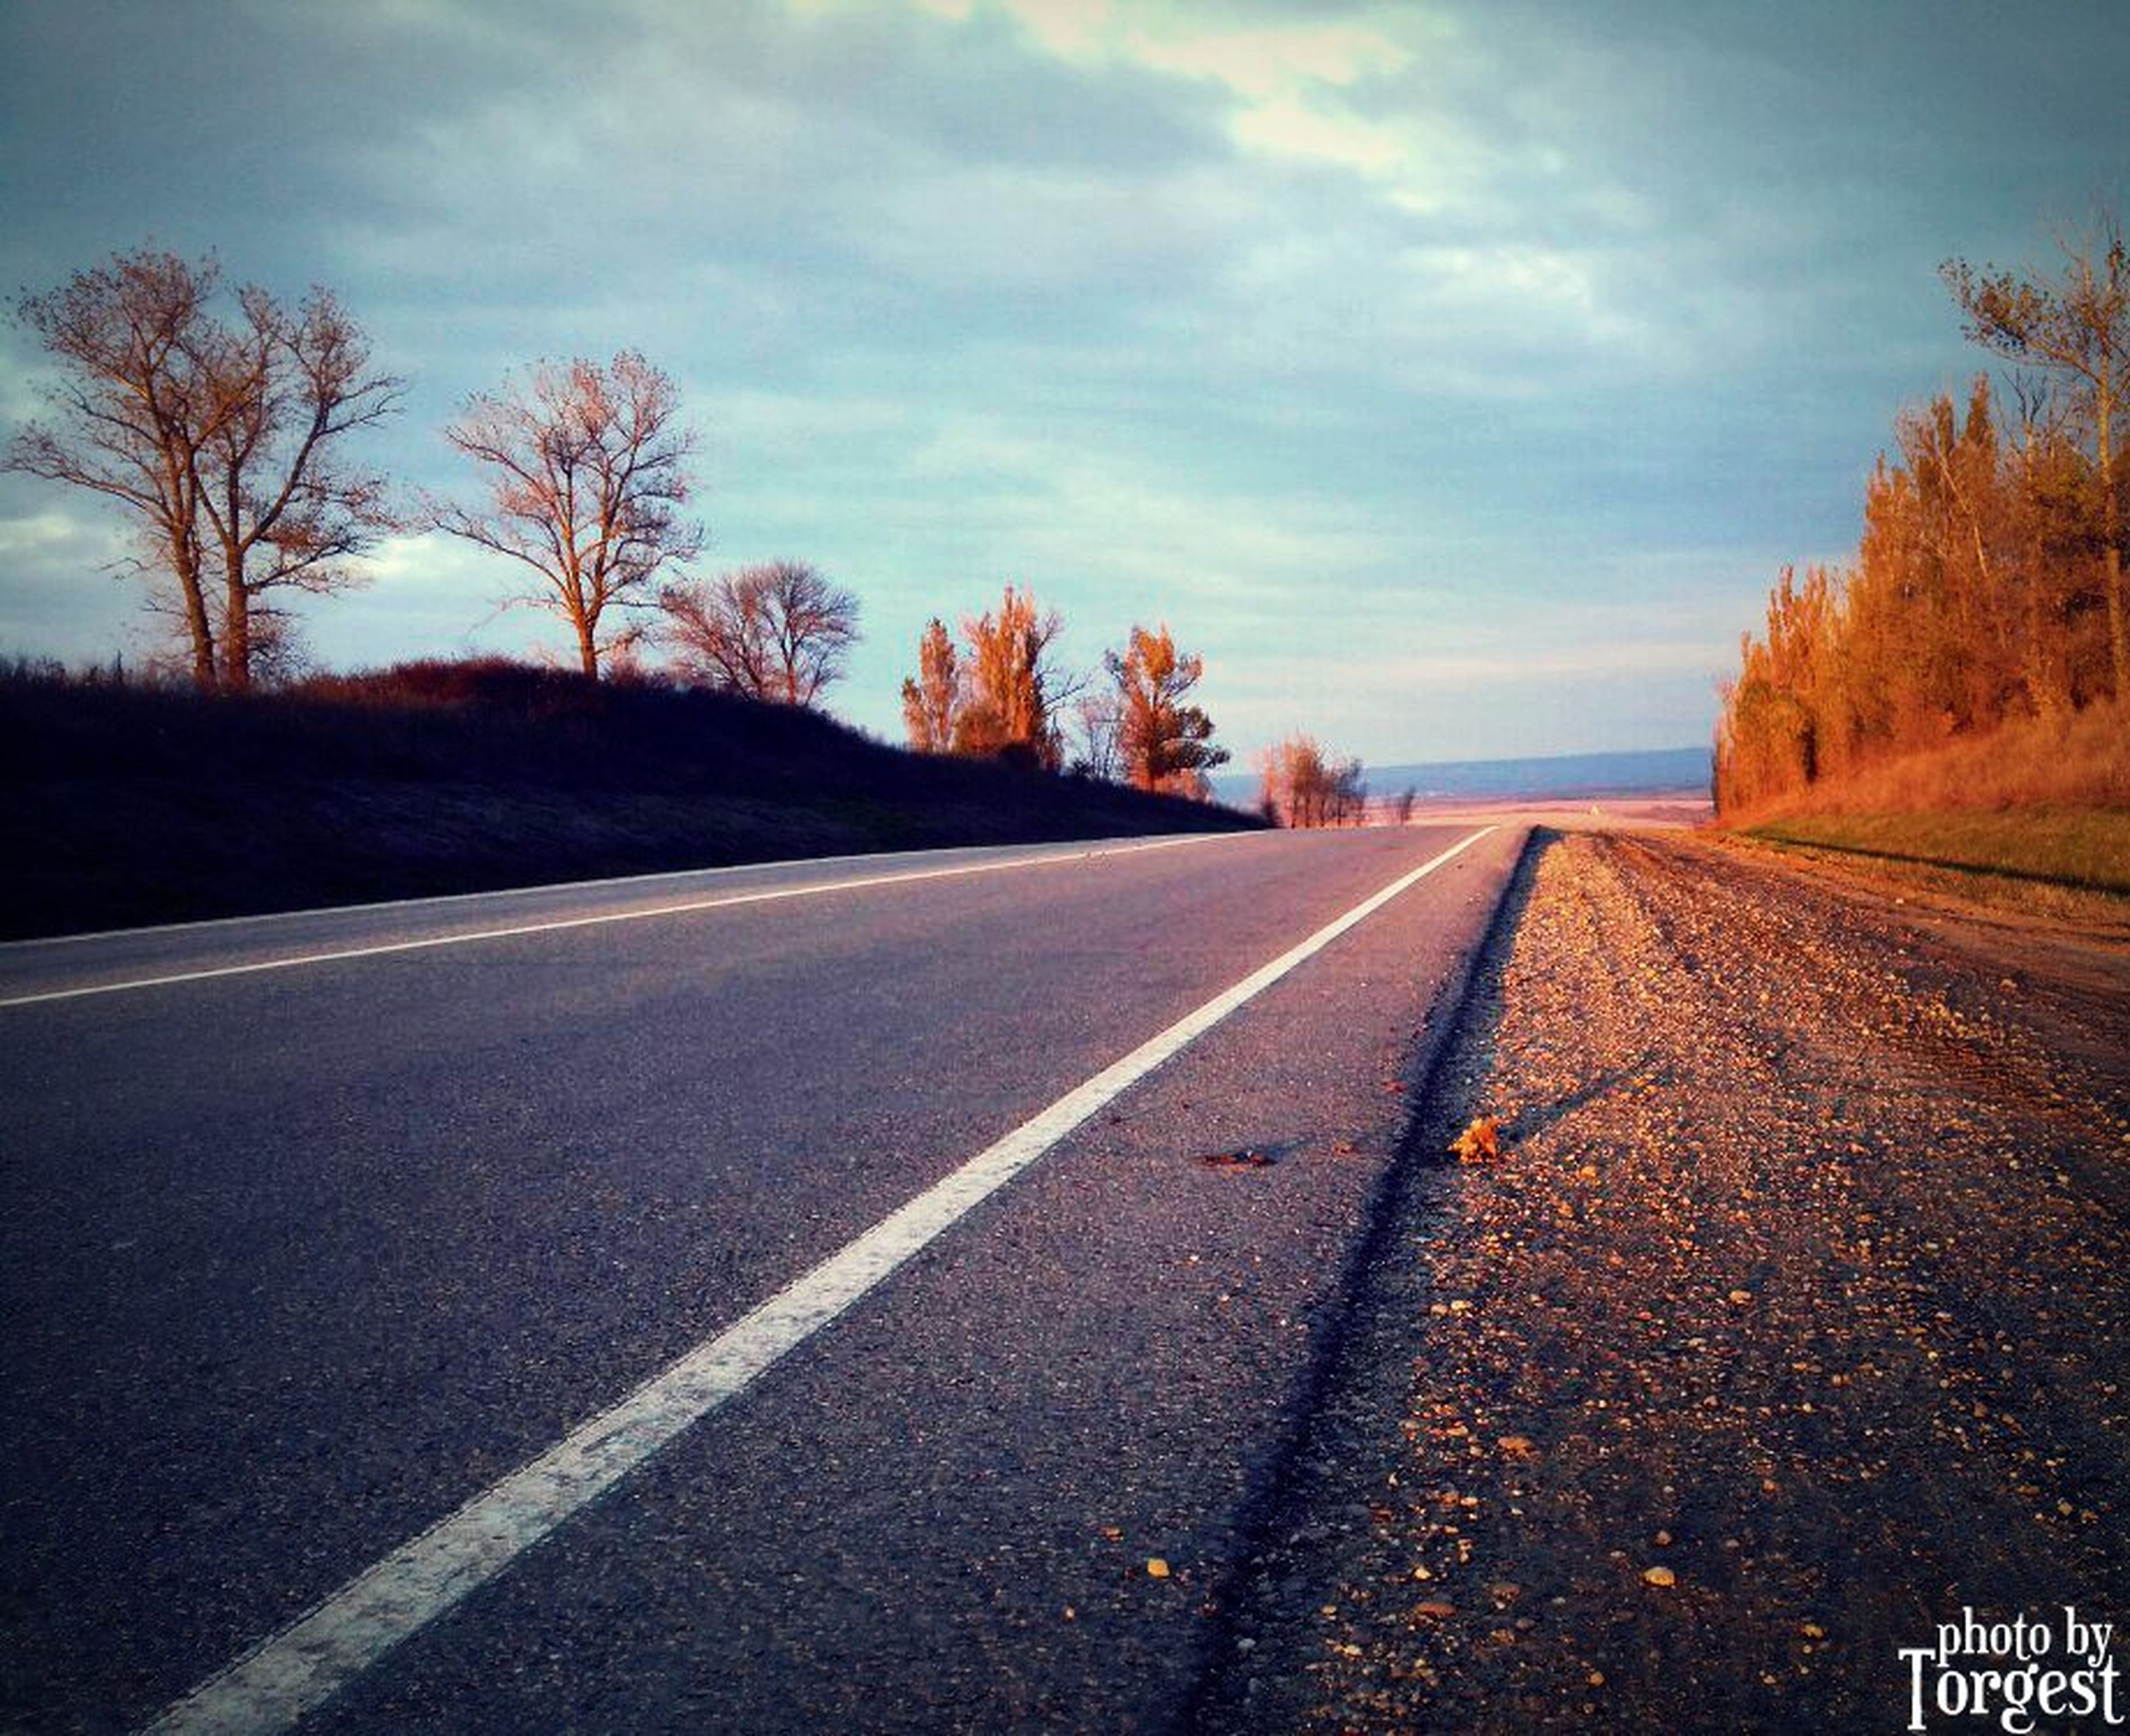 road, sky, tree, the way forward, transportation, no people, nature, outdoors, cloud - sky, asphalt, scenics, day, tranquil scene, landscape, beauty in nature